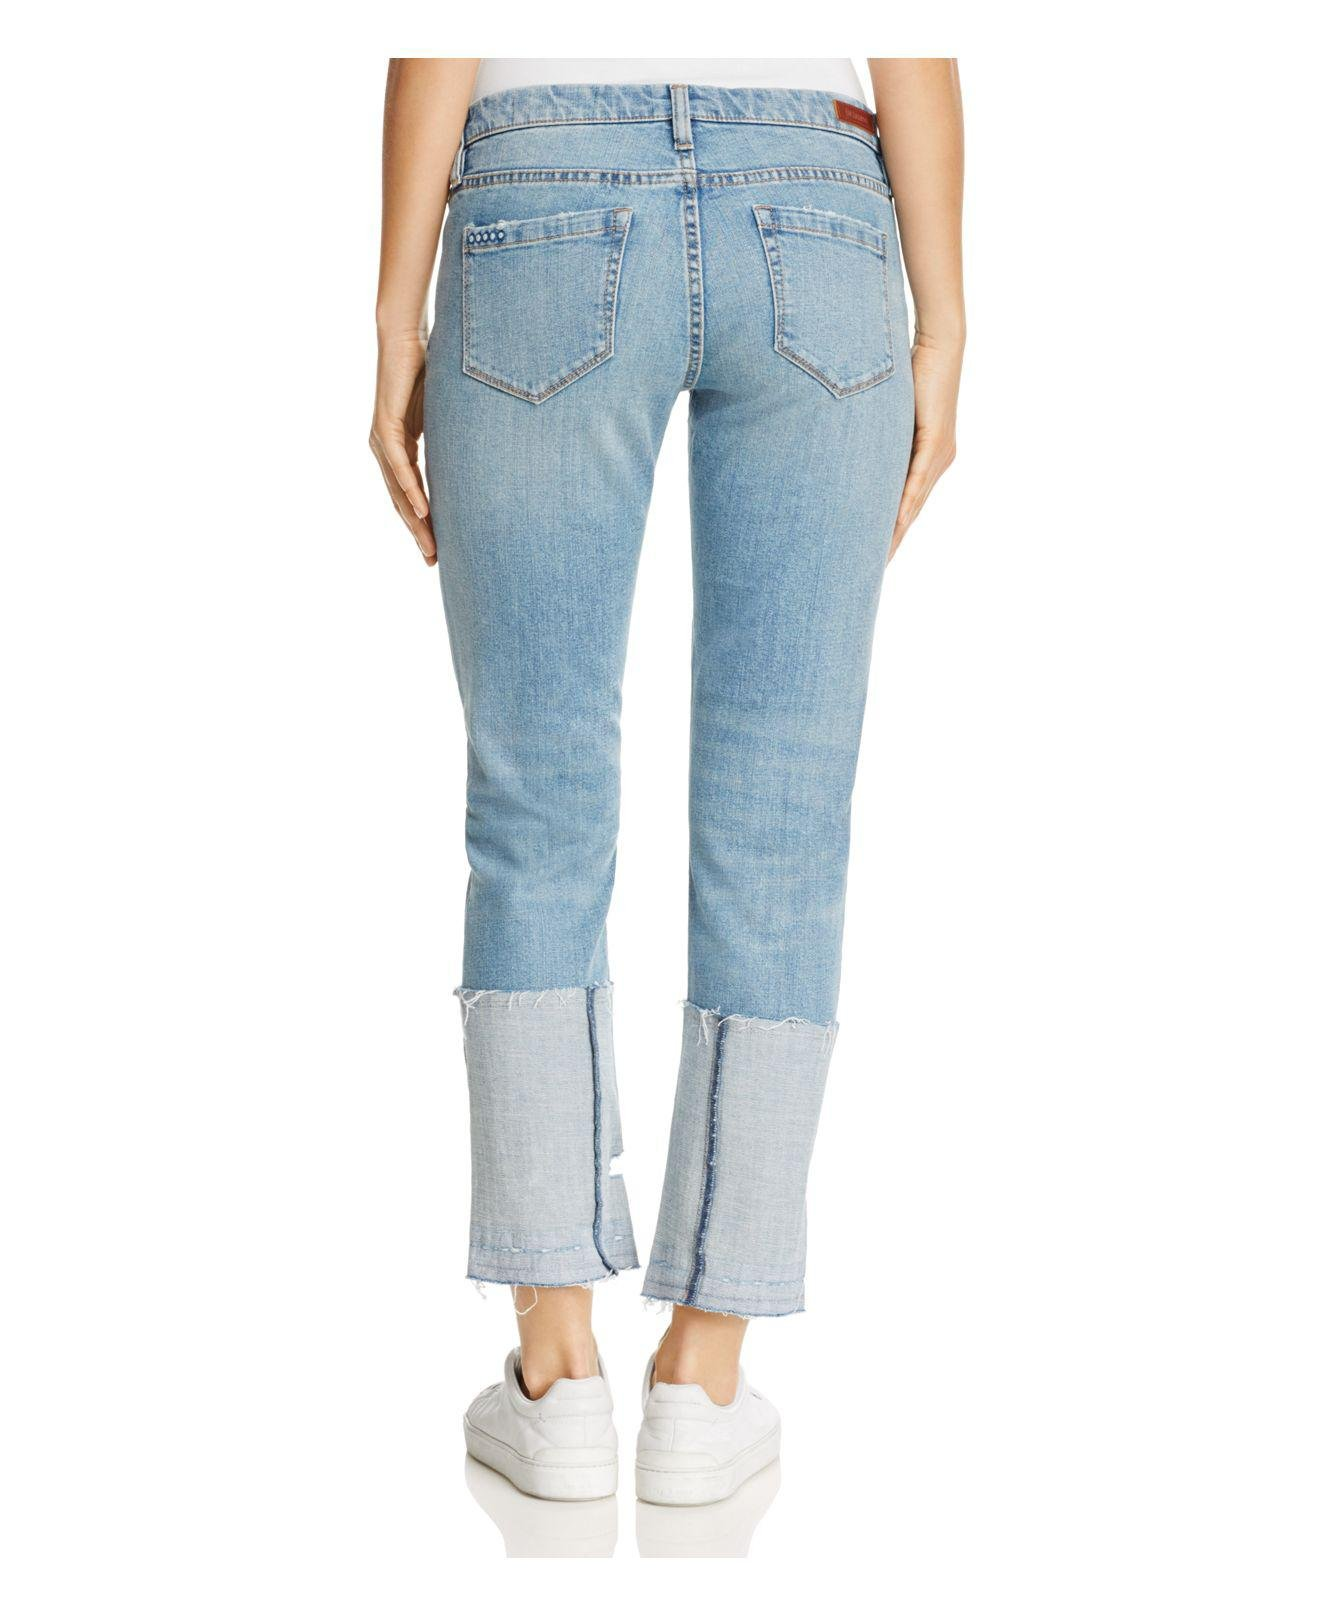 Blank NYC Denim Deep Cuff Jeans In Closet Case in Blue